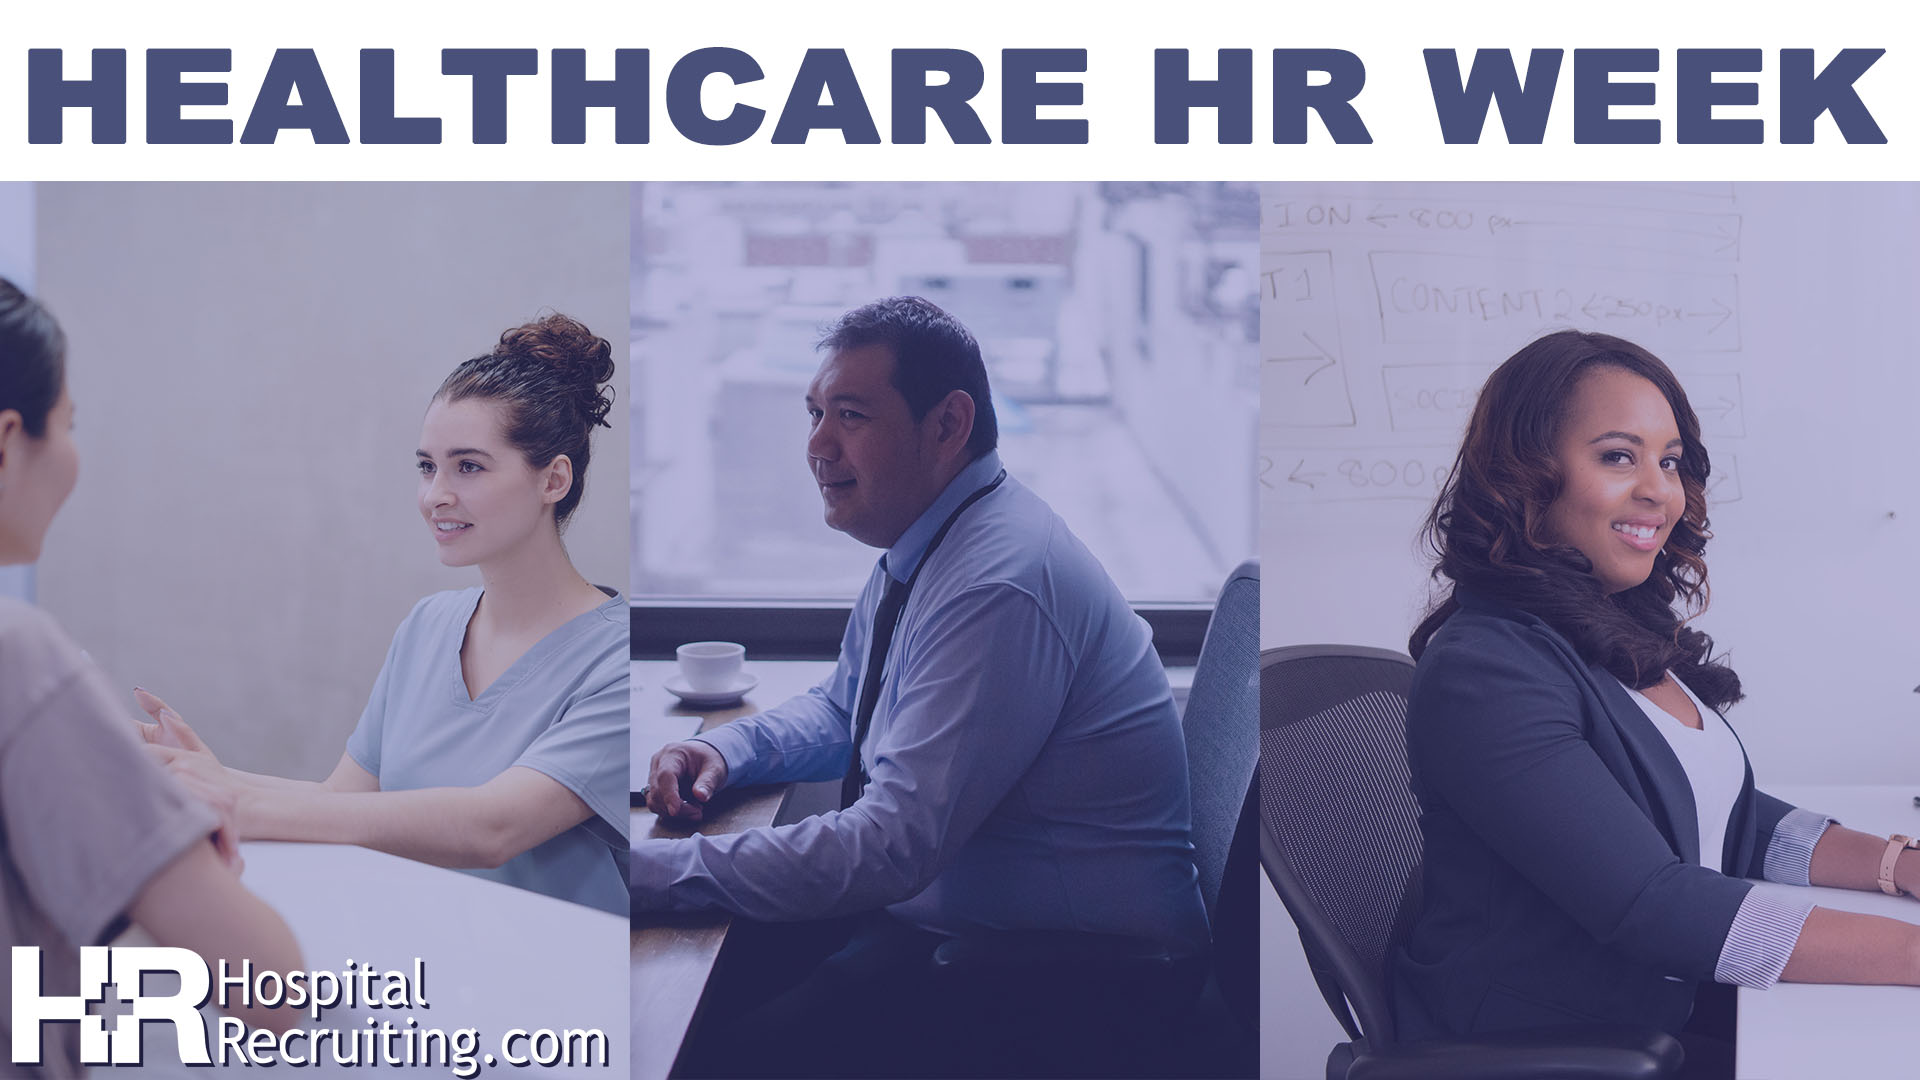 Health Care Human Resources Week thumbnail image